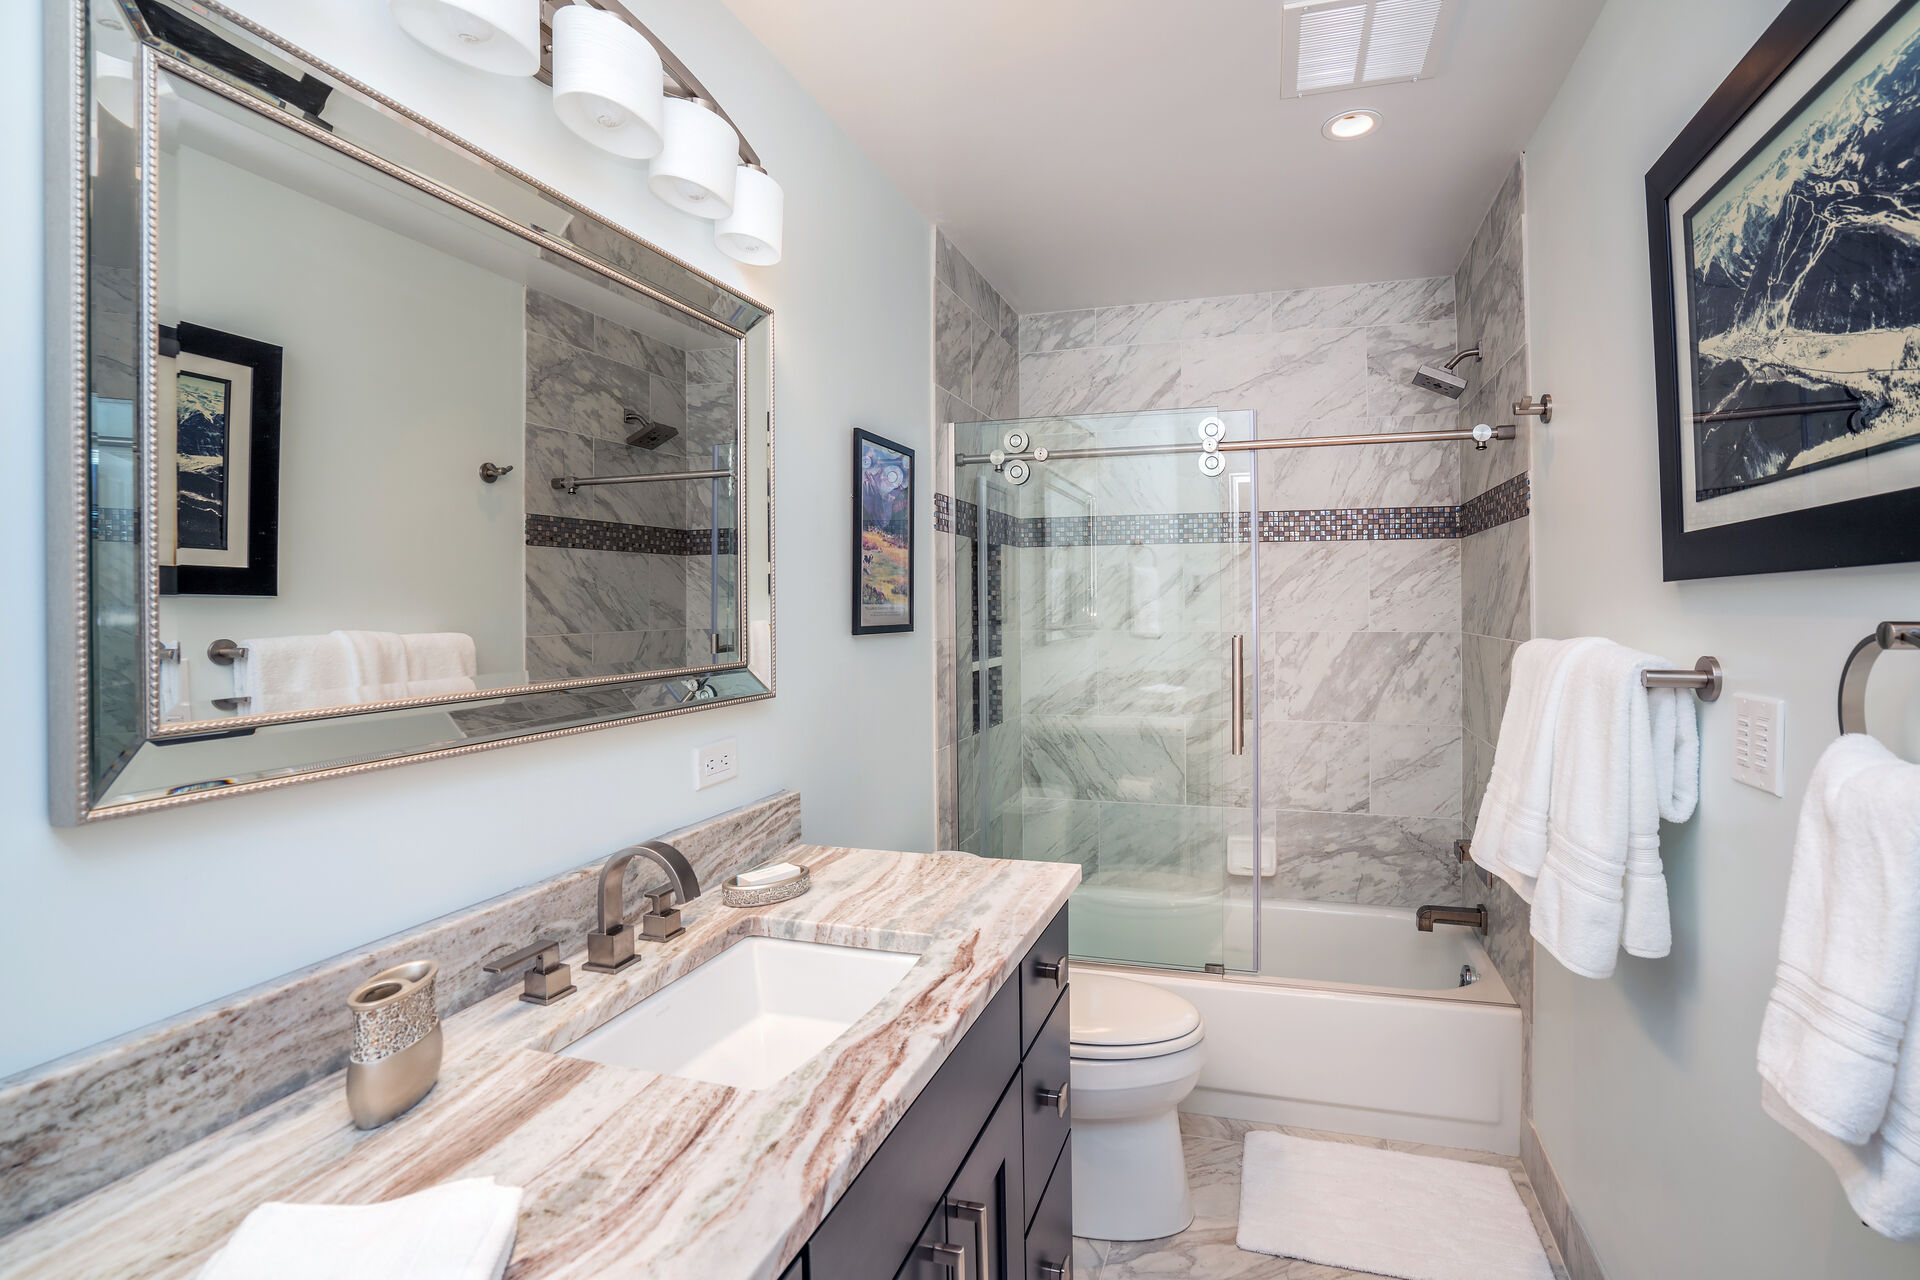 Shower-Tub Combo and Single Sink